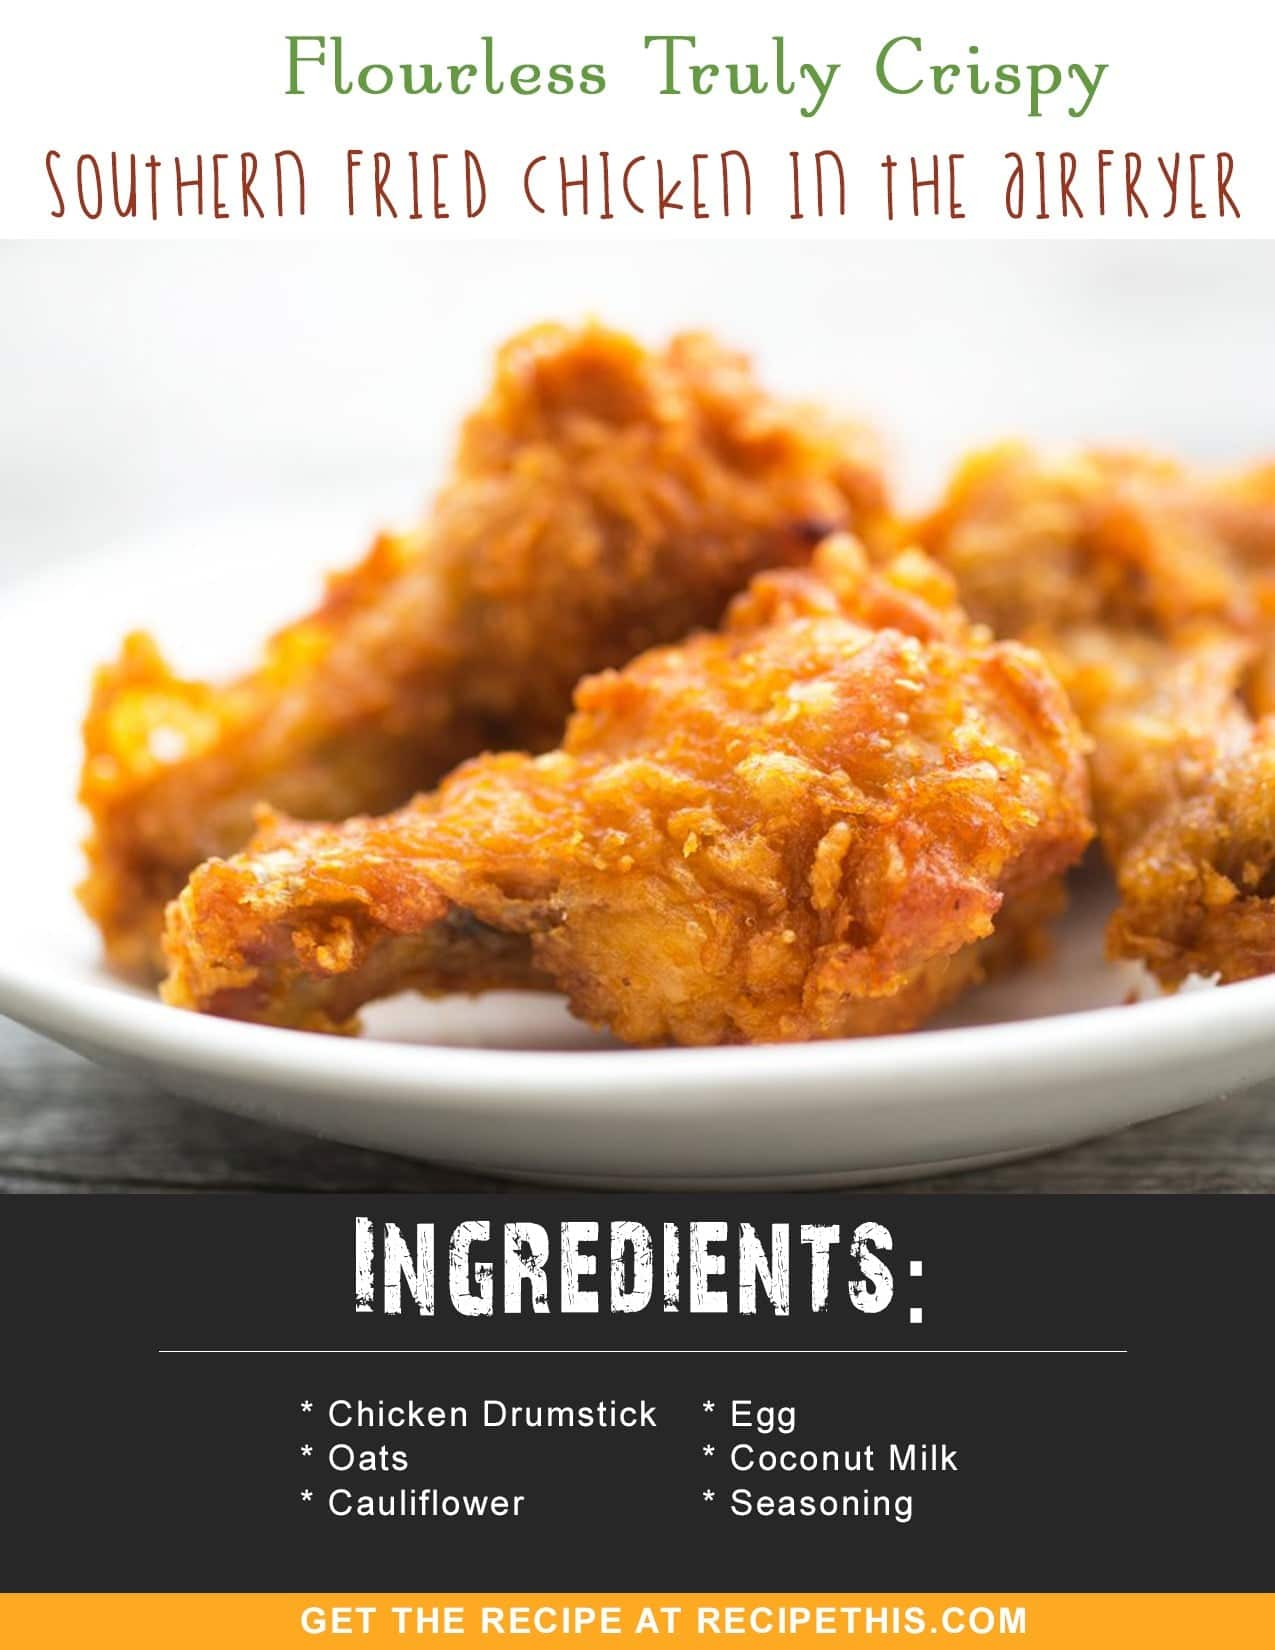 Flourless truly crispy southern fried chicken in the air fryer flourless truly crispy southern fried chicken in the air fryer recipe this forumfinder Images